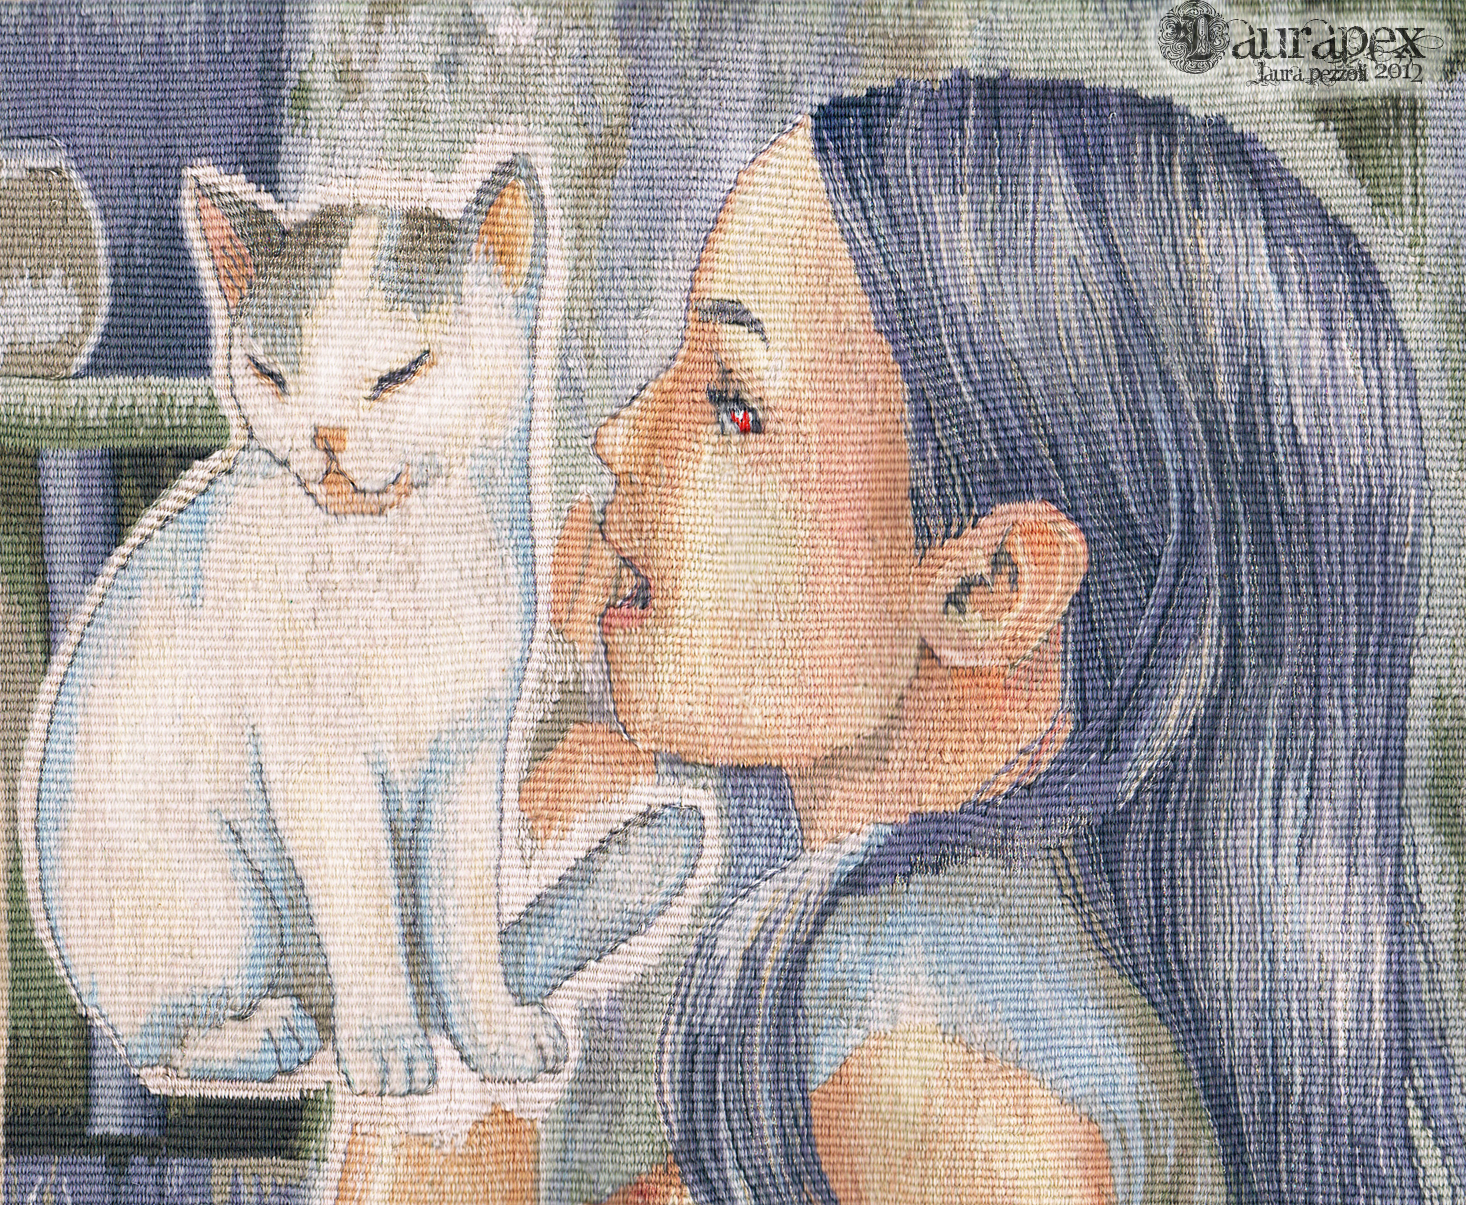 The Child and the Magic Cat - tapestry by LauraPex